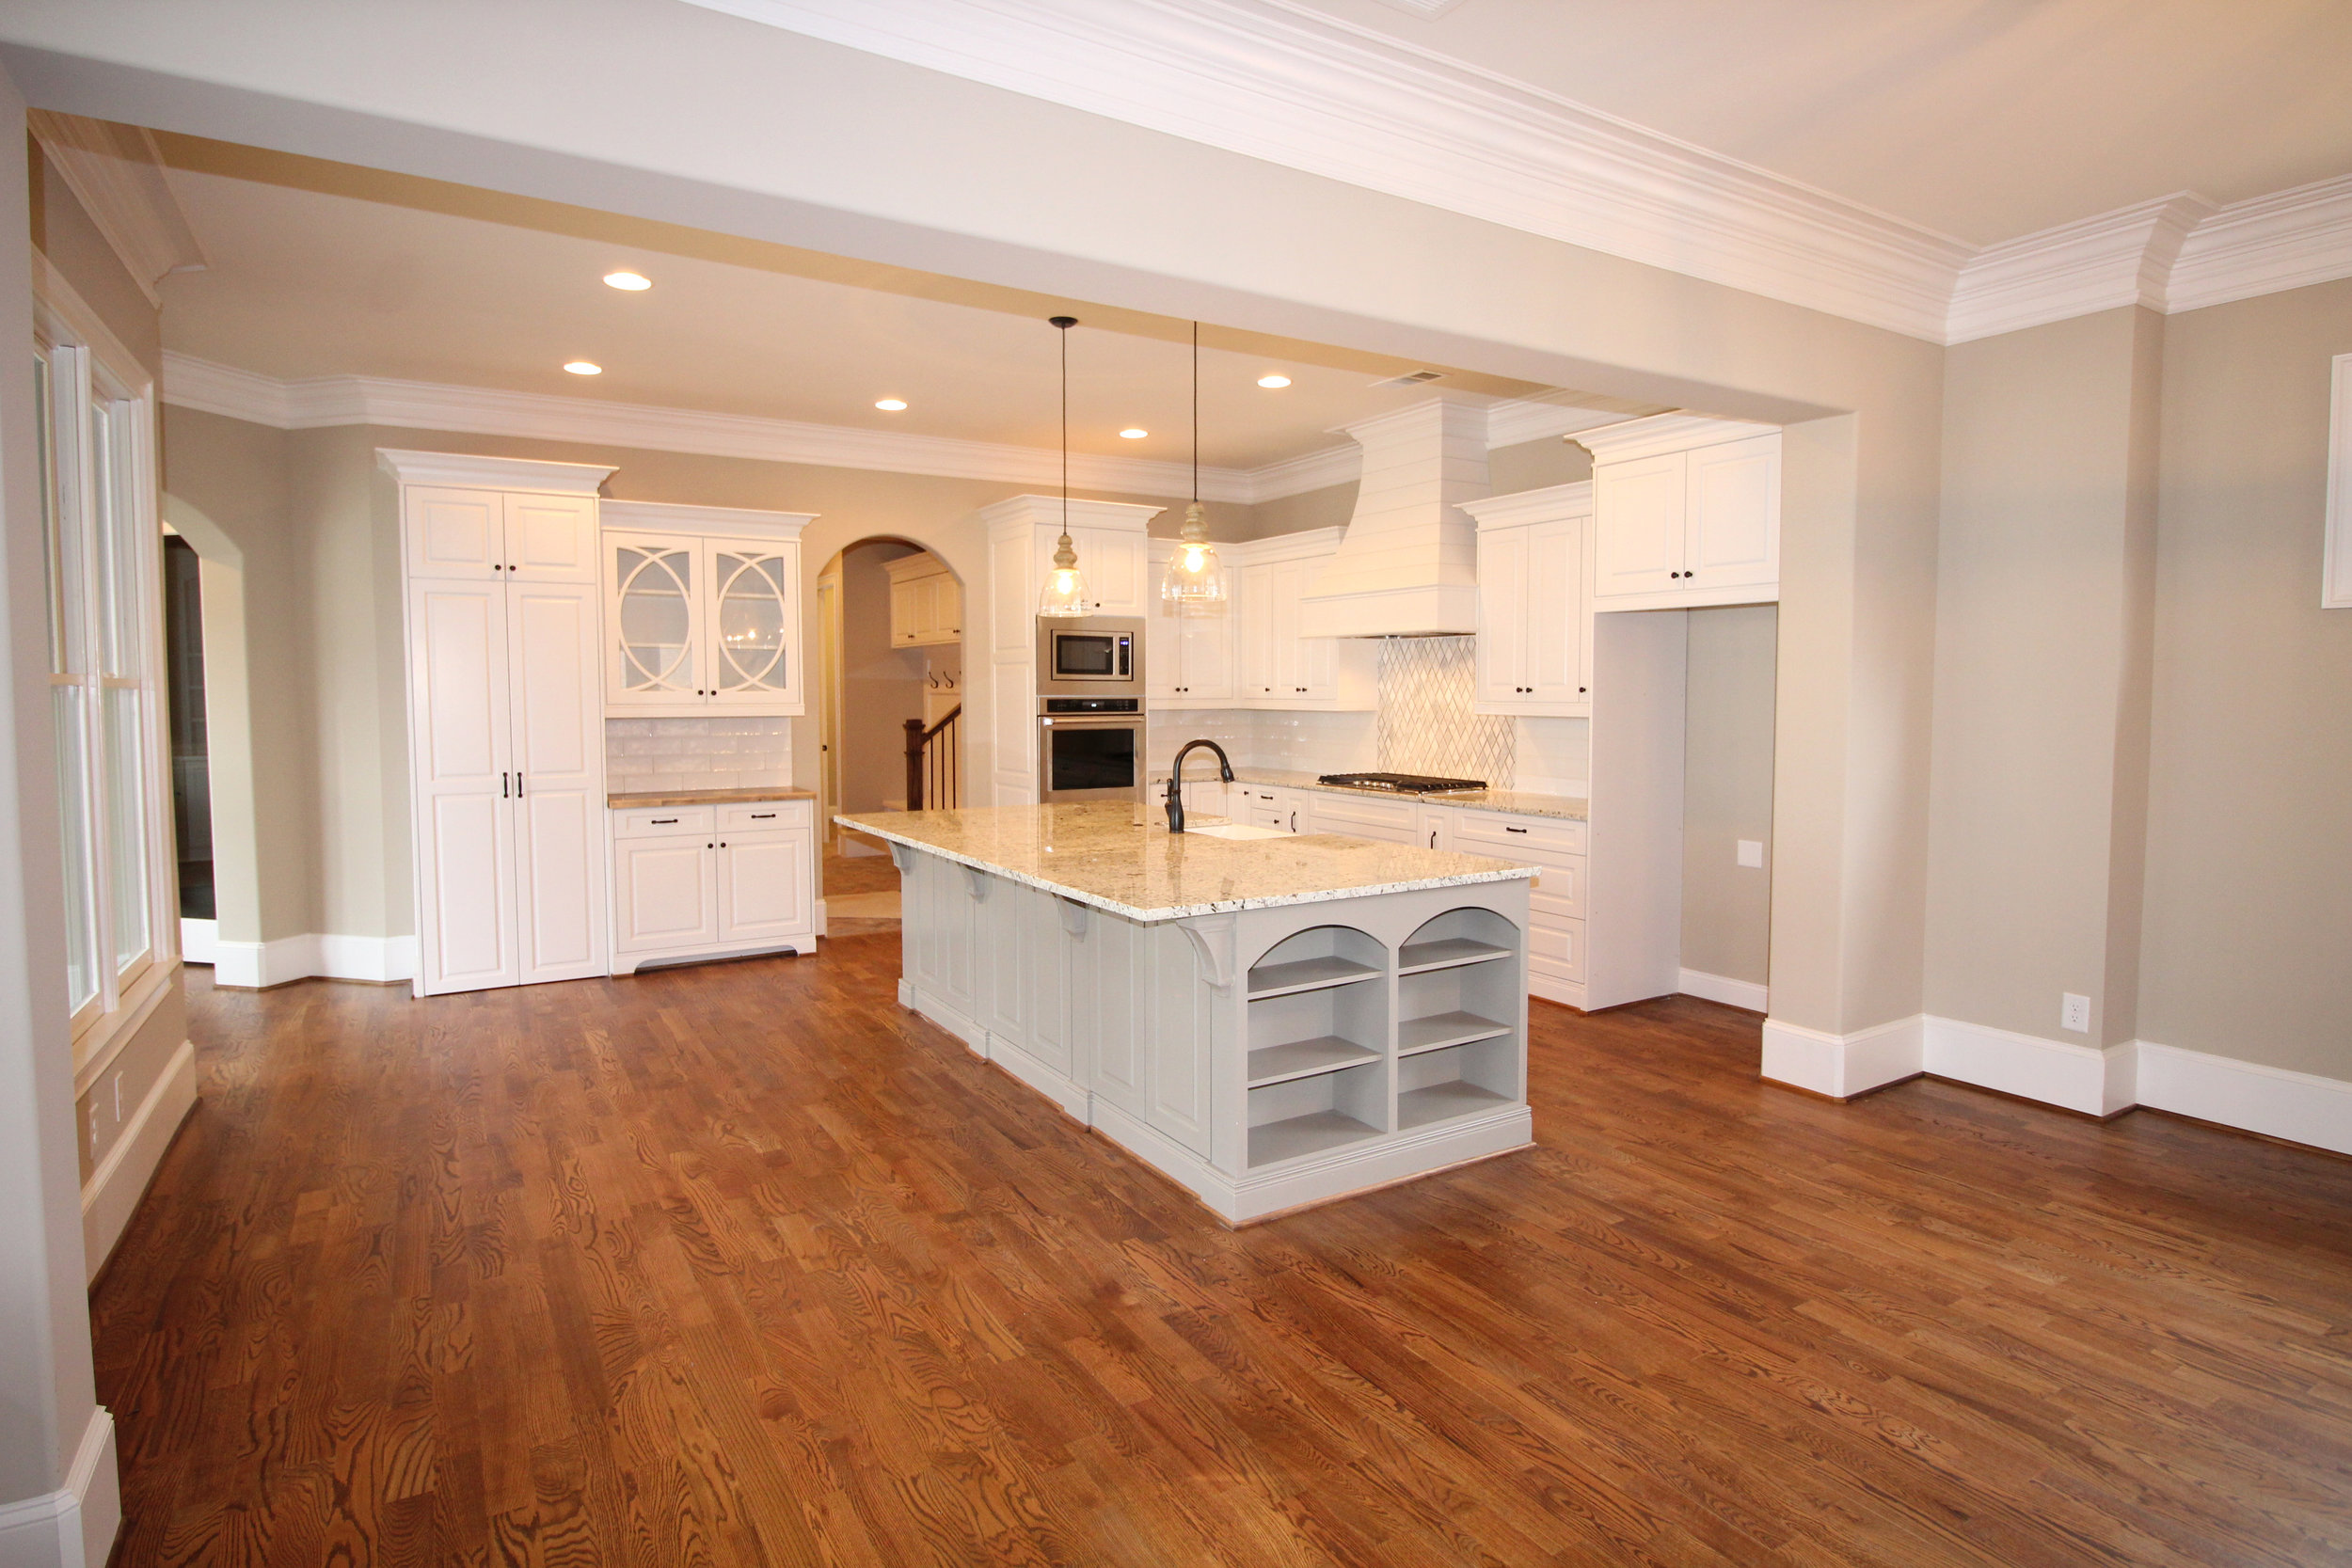 large-gourmet-chefs-kitchen-1756-greenleffe-drive-statham-ga-30666-the-georgia-club-oconee-county-oconee-springs-athens-area-home-for-sale-courtyard-homes.JPG